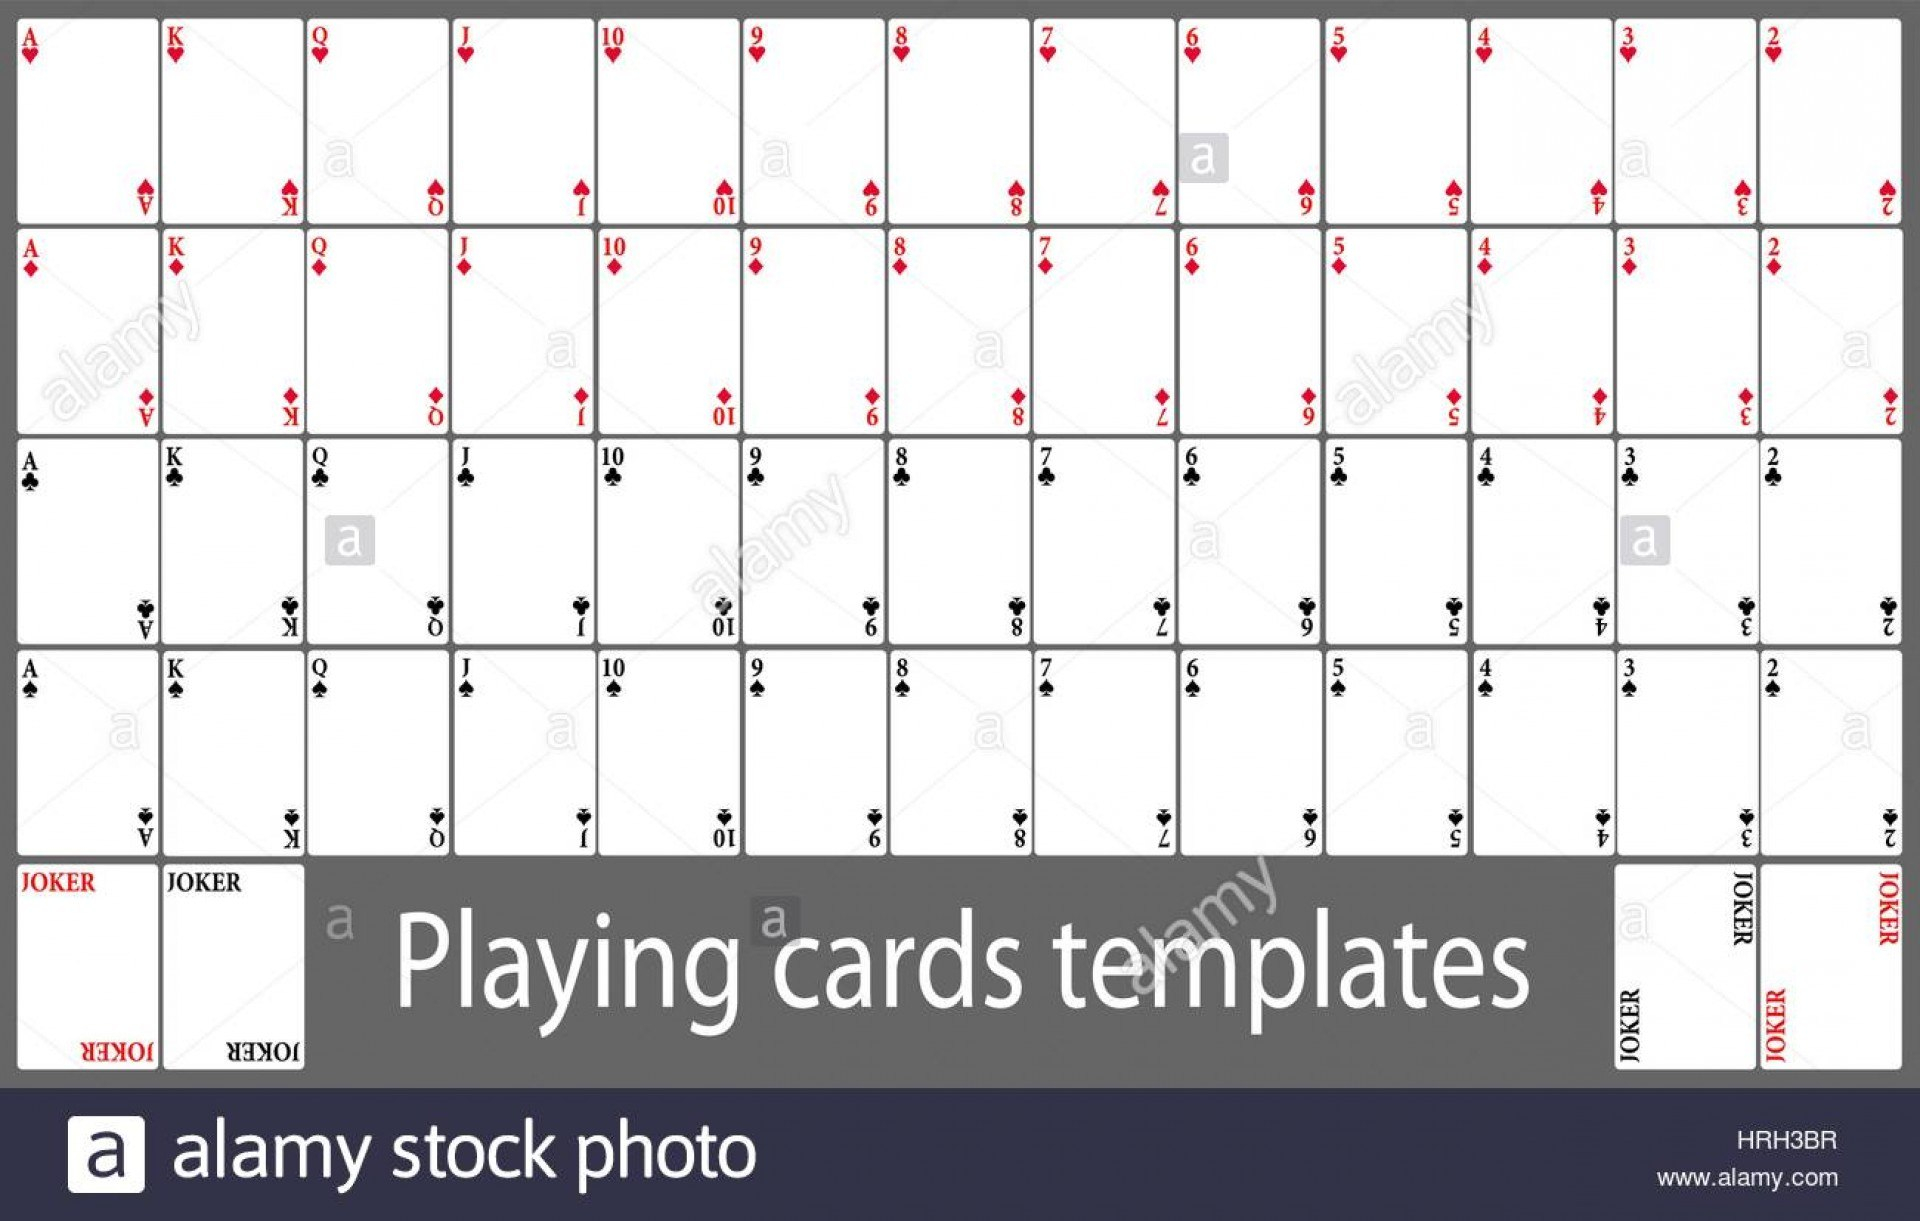 Template Ideas Deck Of Cards Shocking For Google Blank Download Intended For Deck Of Cards Template